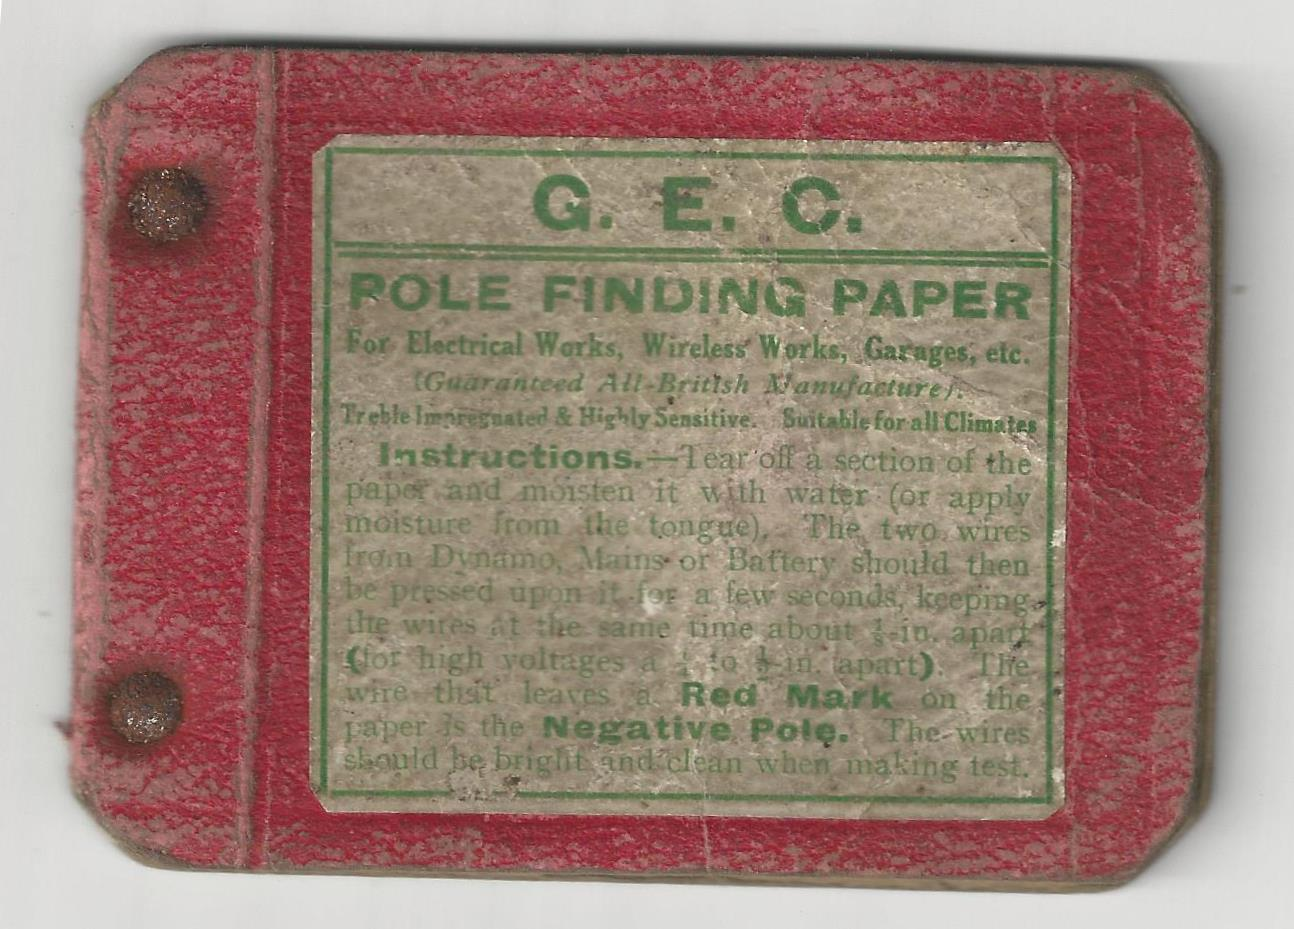 Pole Finding Paper